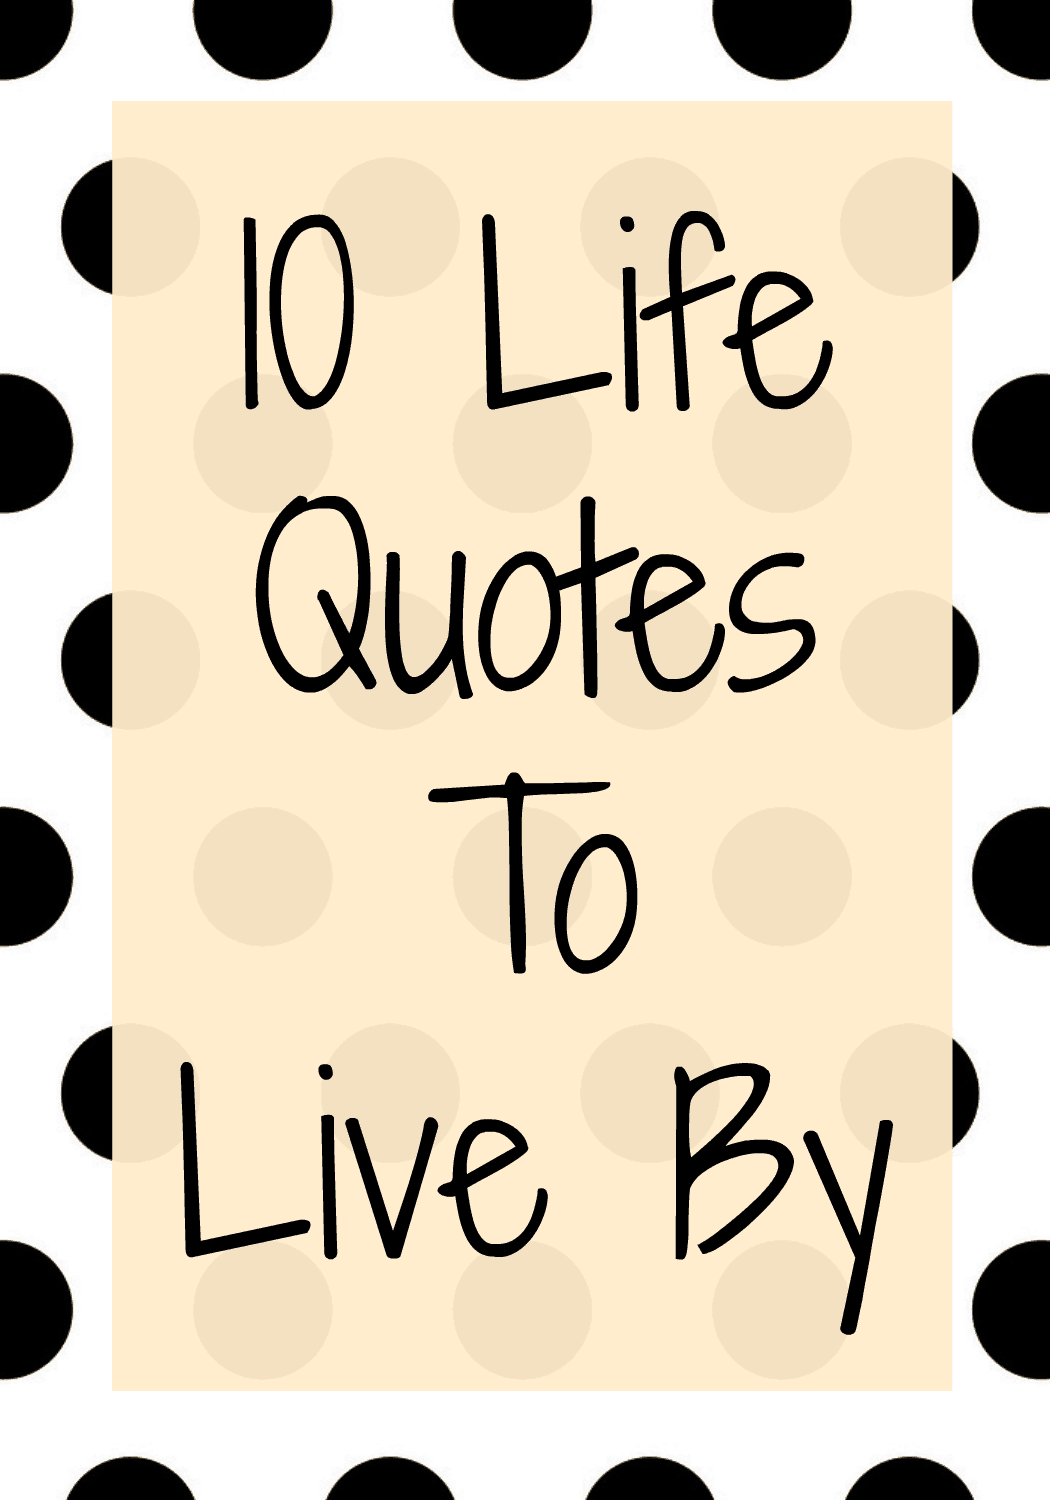 10 Quotes To Live By  Wise Words To Teach Your Kids. Single Quotes Usage. Boyfriend Died Quotes. Morning Quotes For Your Girl. Strong Person Quotes Tumblr. Quotes About Change Facebook. Summer Country Quotes Tumblr. Love Quotes For Mom. Disney Quotes Mother And Son